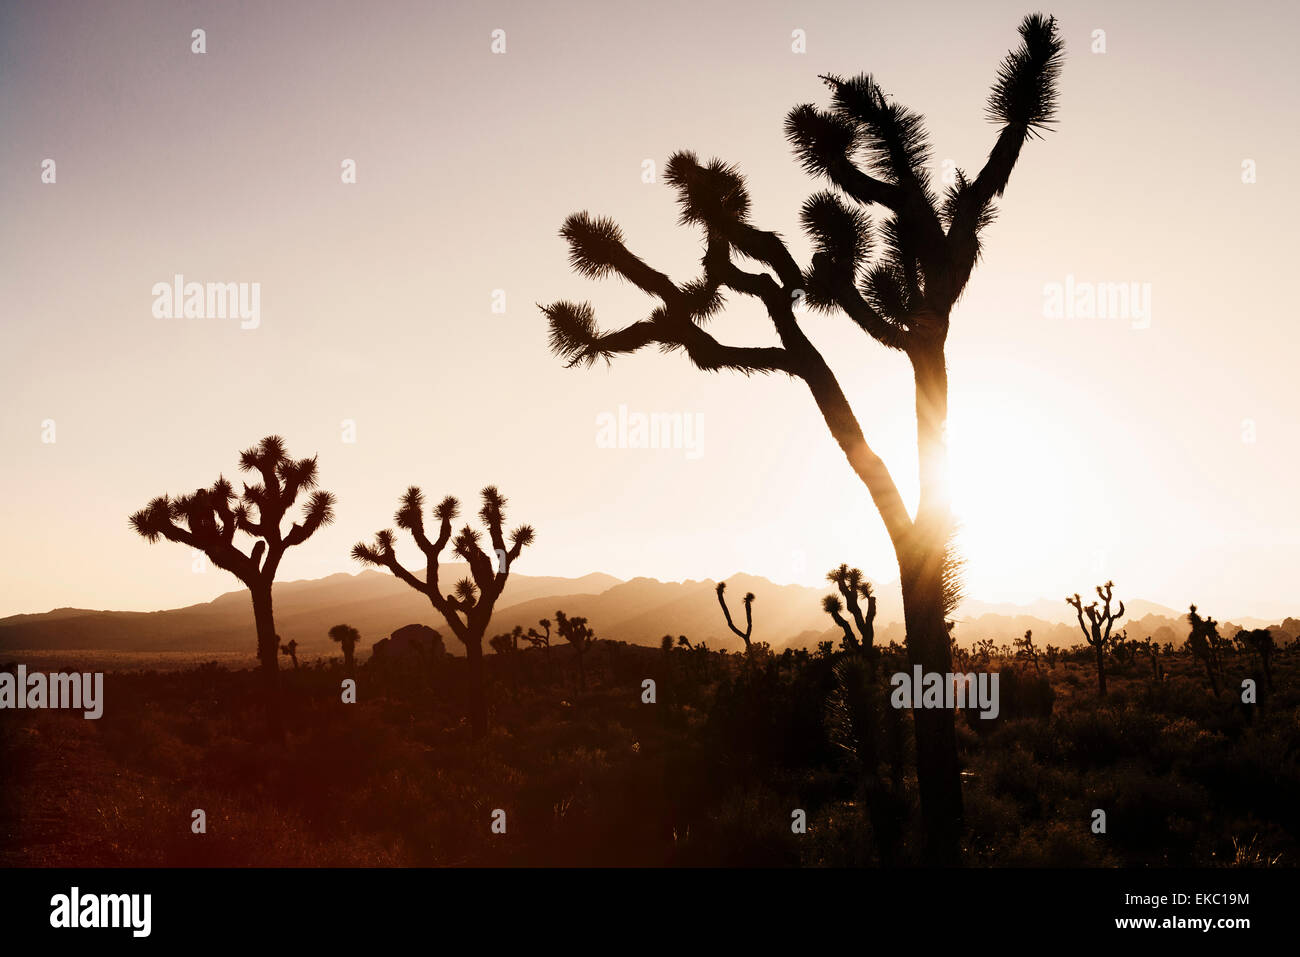 Silhouette Joshua Bäume, Joshua Tree Nationalpark, Kalifornien, USA Stockbild